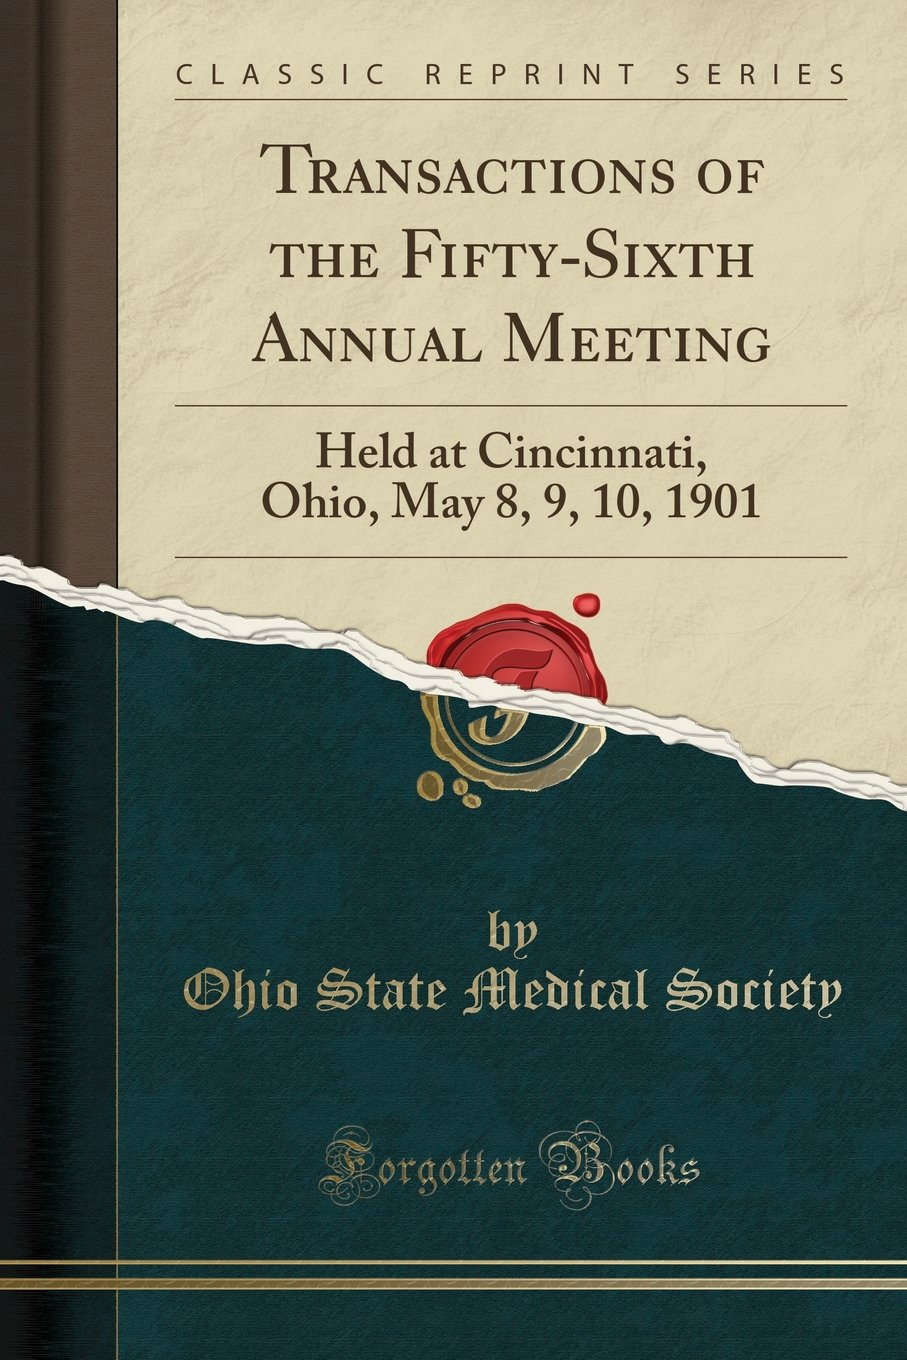 Transactions of the Fifty-Sixth Annual Meeting: Held at Cincinnati, Ohio, May 8, 9, 10, 1901 (Classic Reprint) ebook